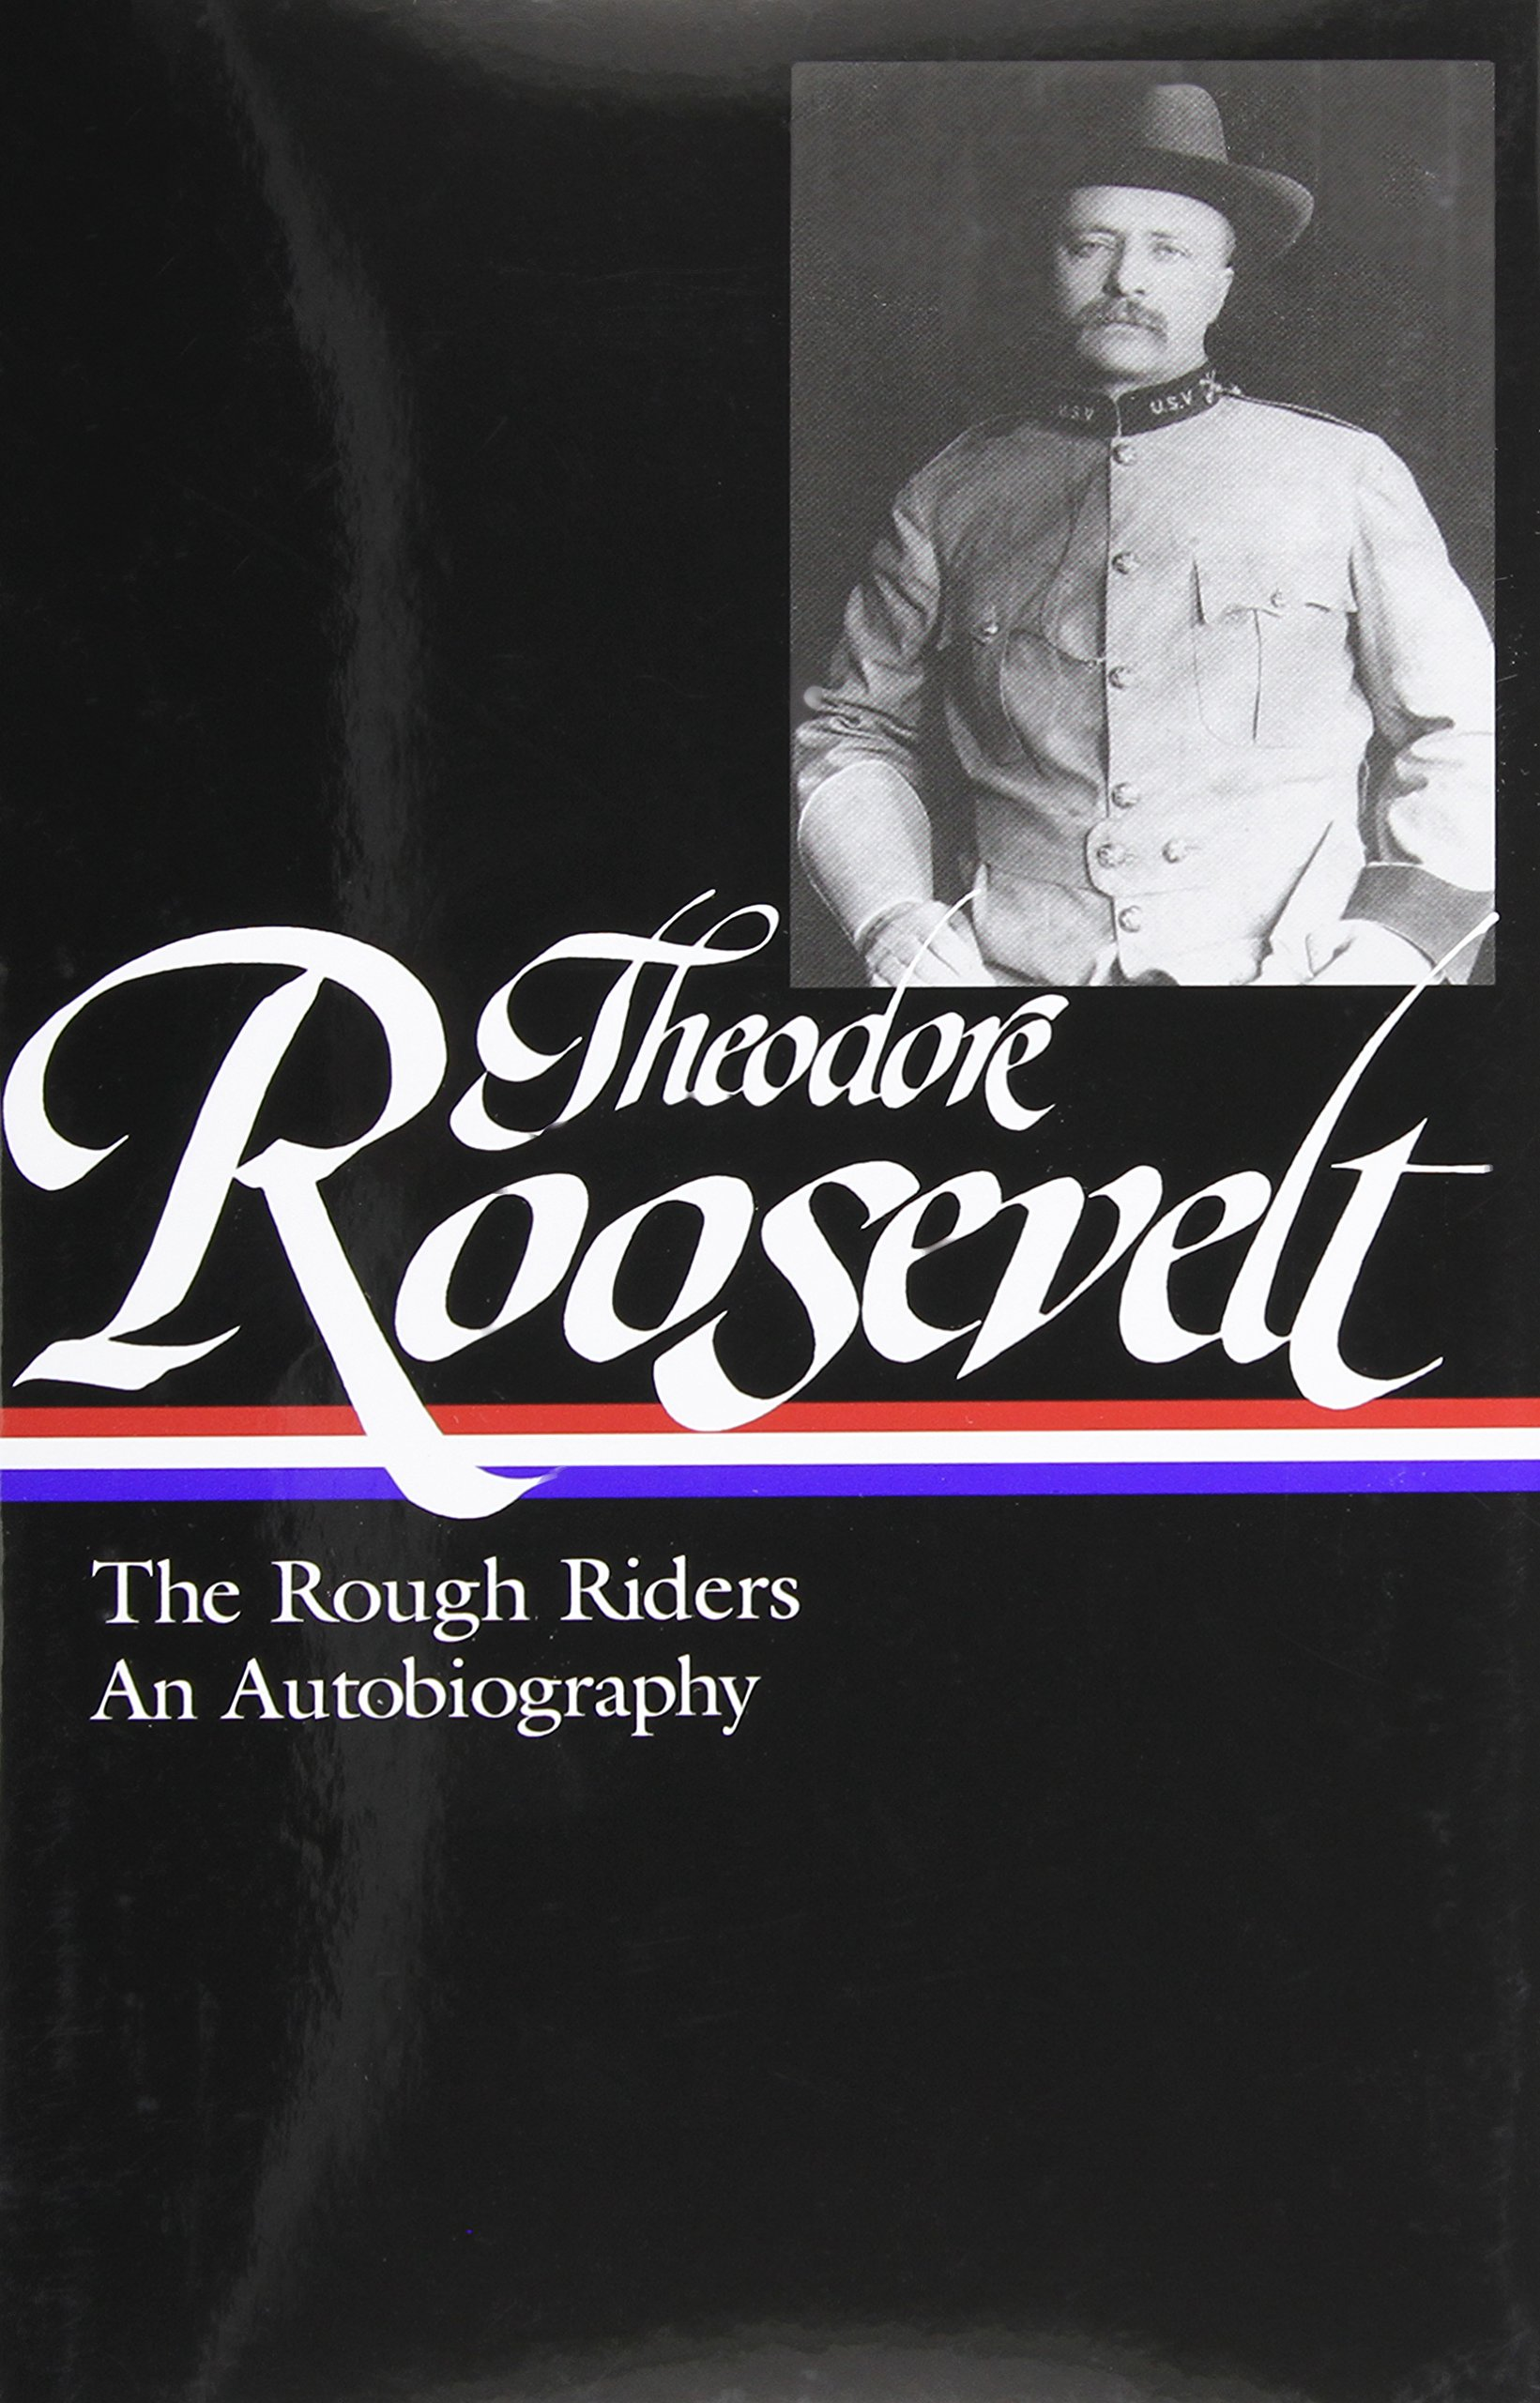 theodore-roosevelt-the-rough-riders-an-autobiography-library-of-america